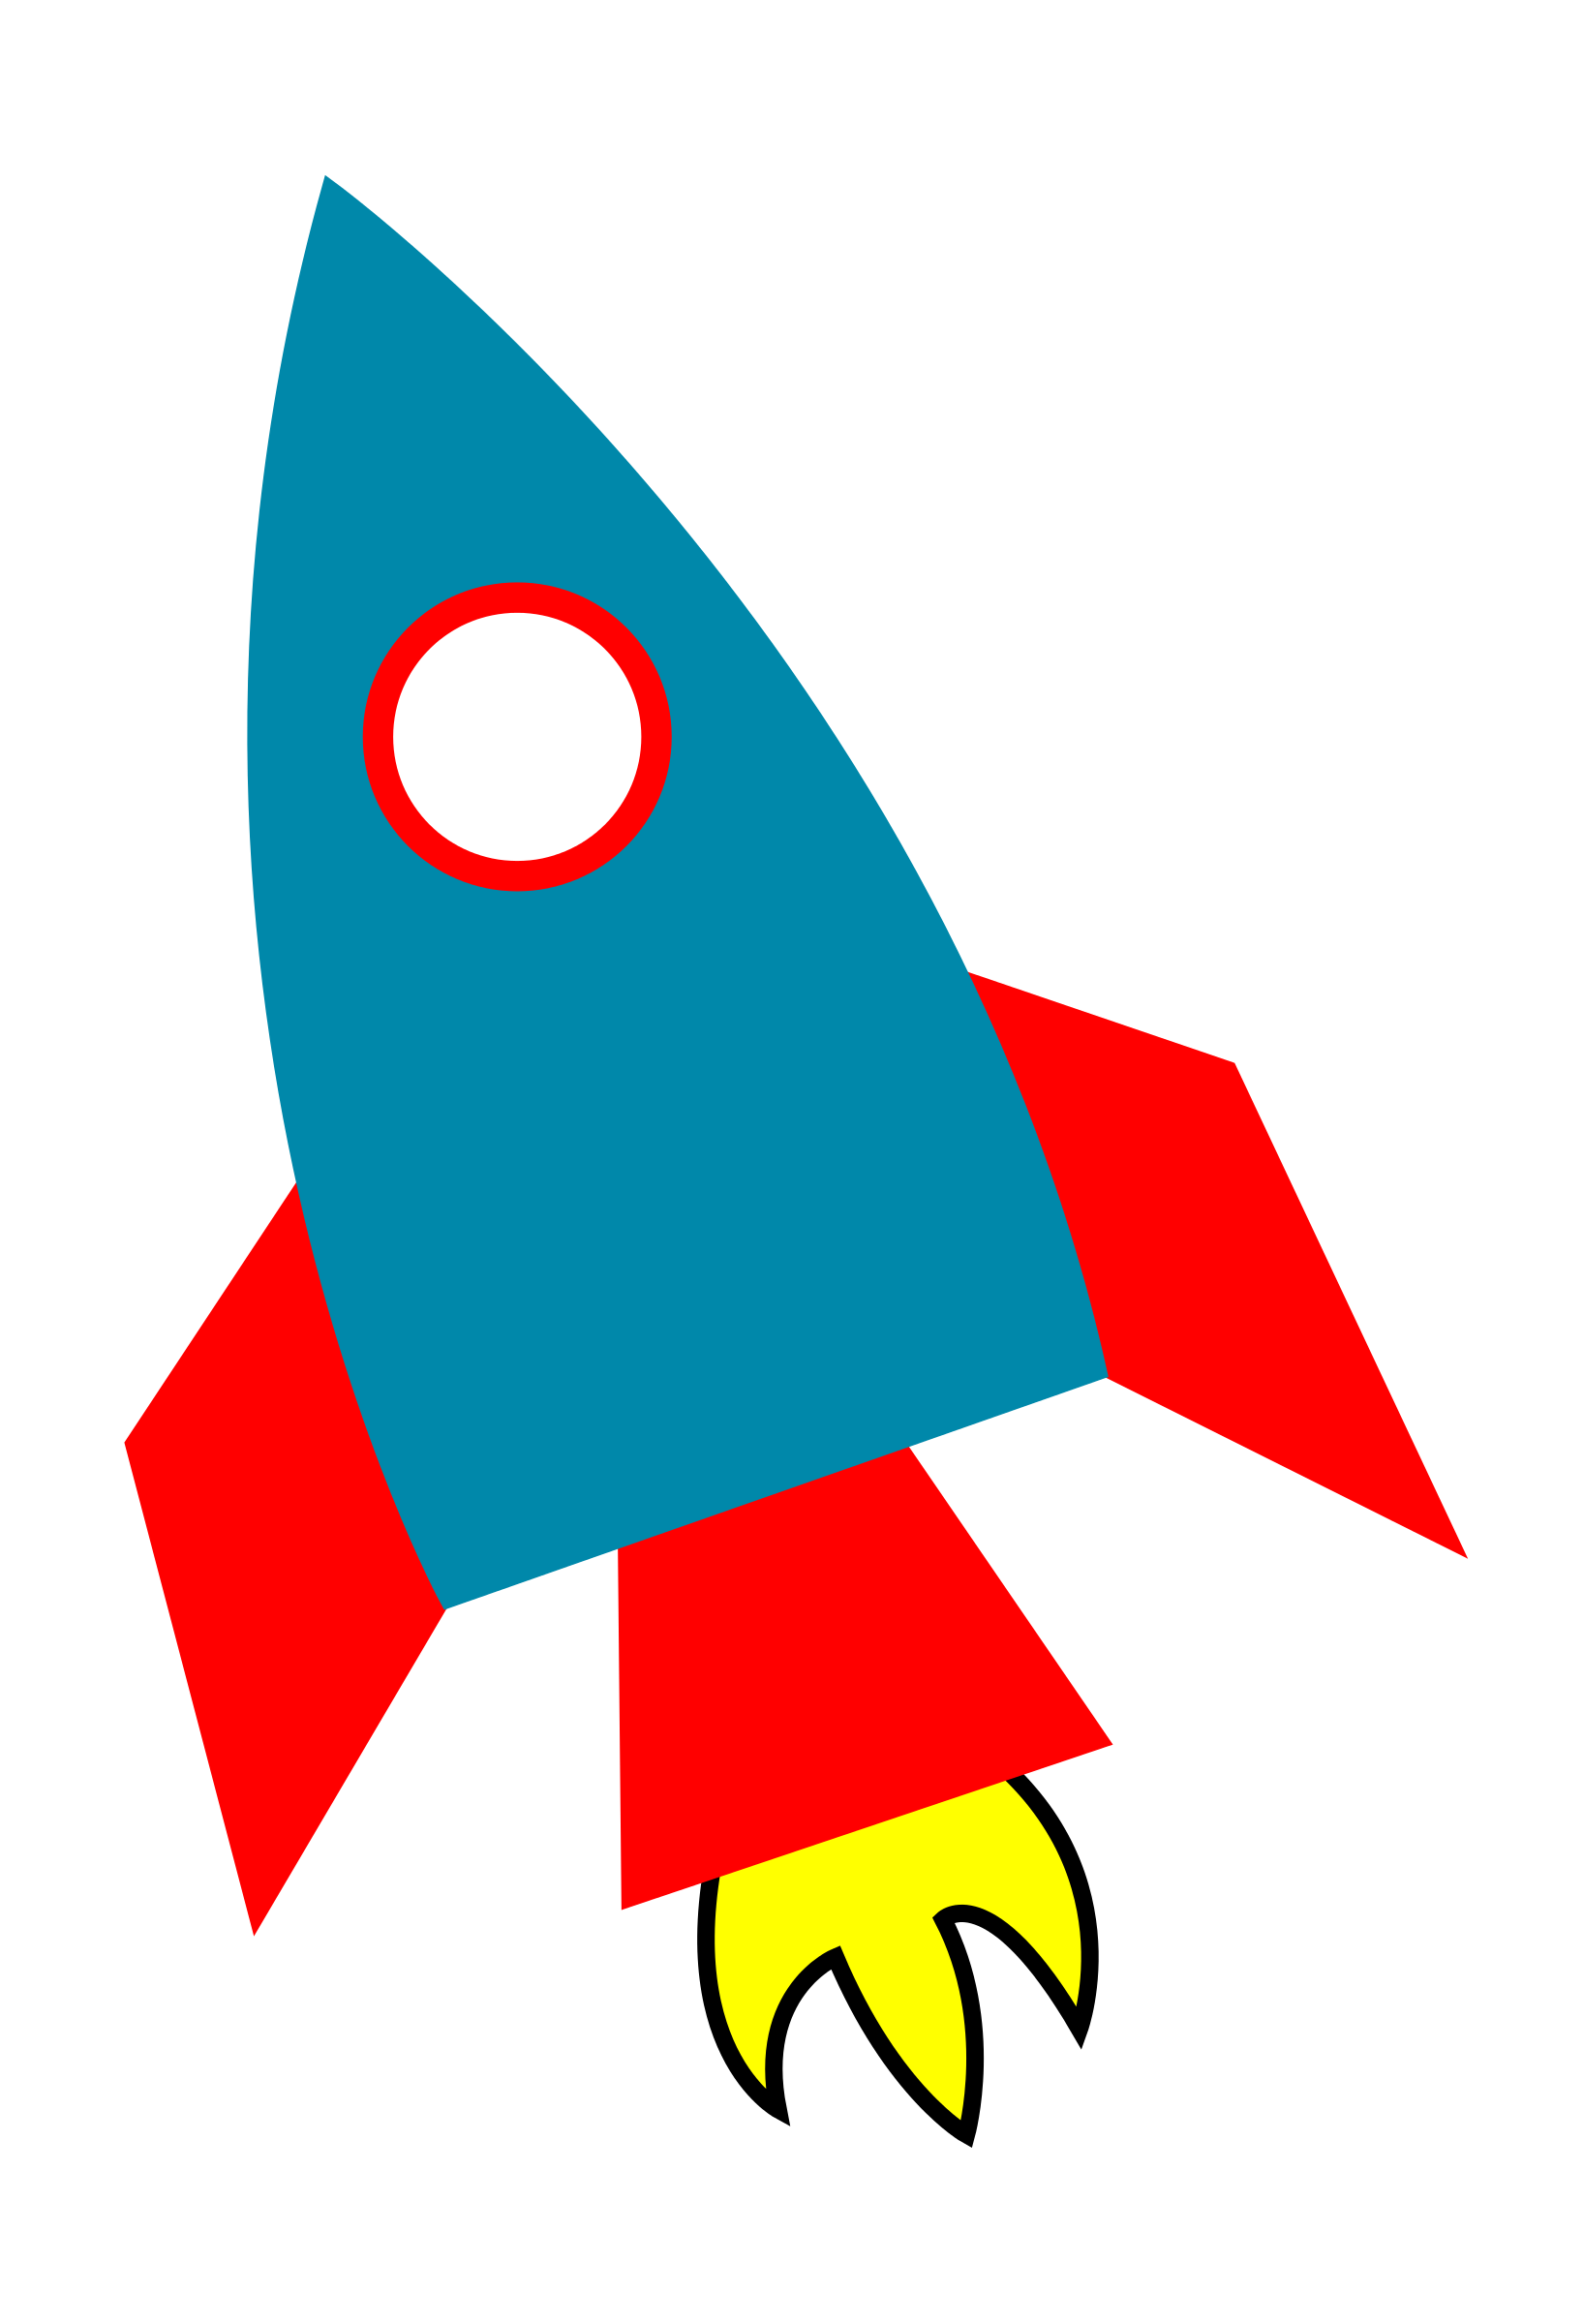 Space rocket launch save. Spaceship clipart realistic